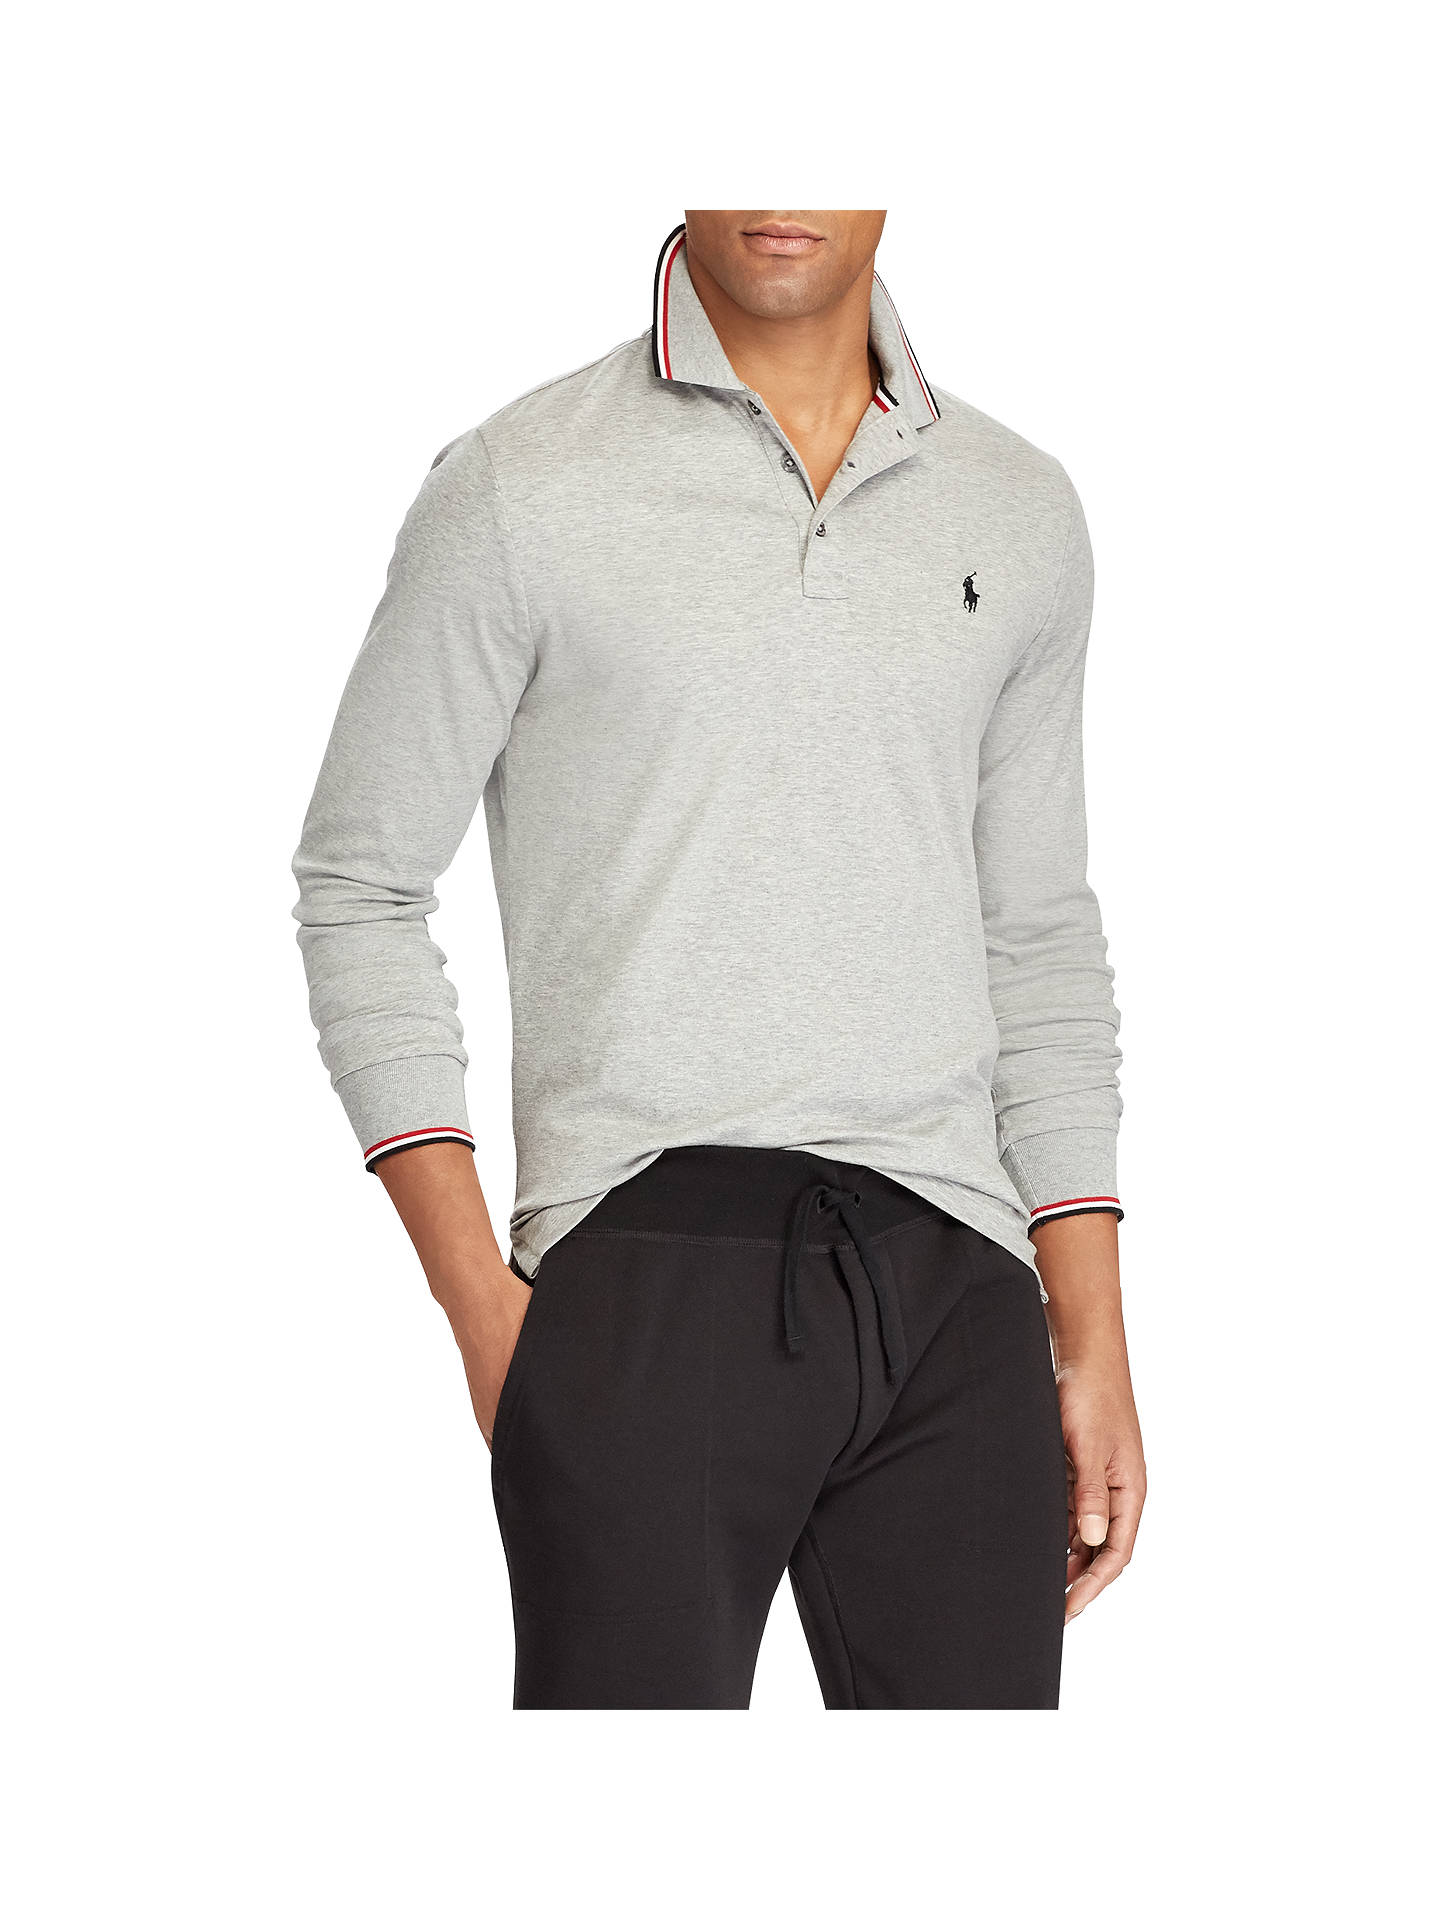 19aab9e3e7a4 Polo Ralph Lauren Slim Fit Long Sleeve Polo Shirt at John Lewis ...